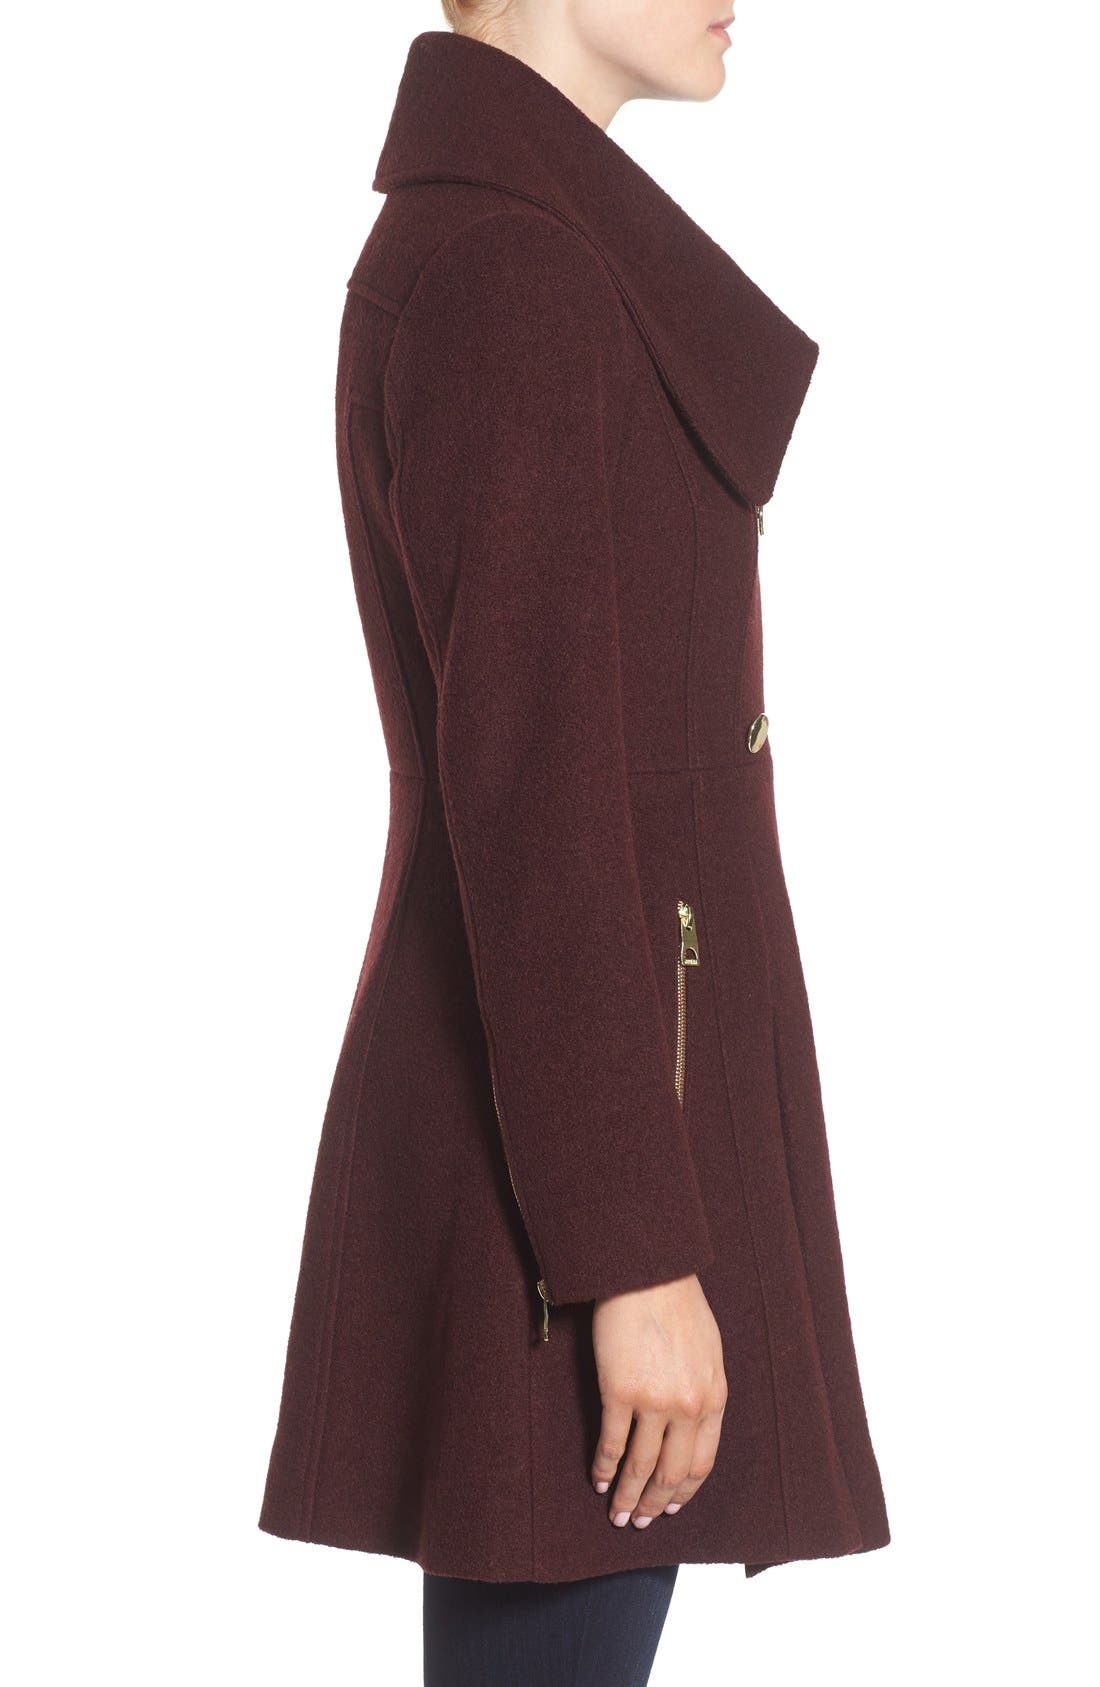 Alternate Image 3  - GUESS Envelope Collar Double Breasted Coat (Regular & Petite)